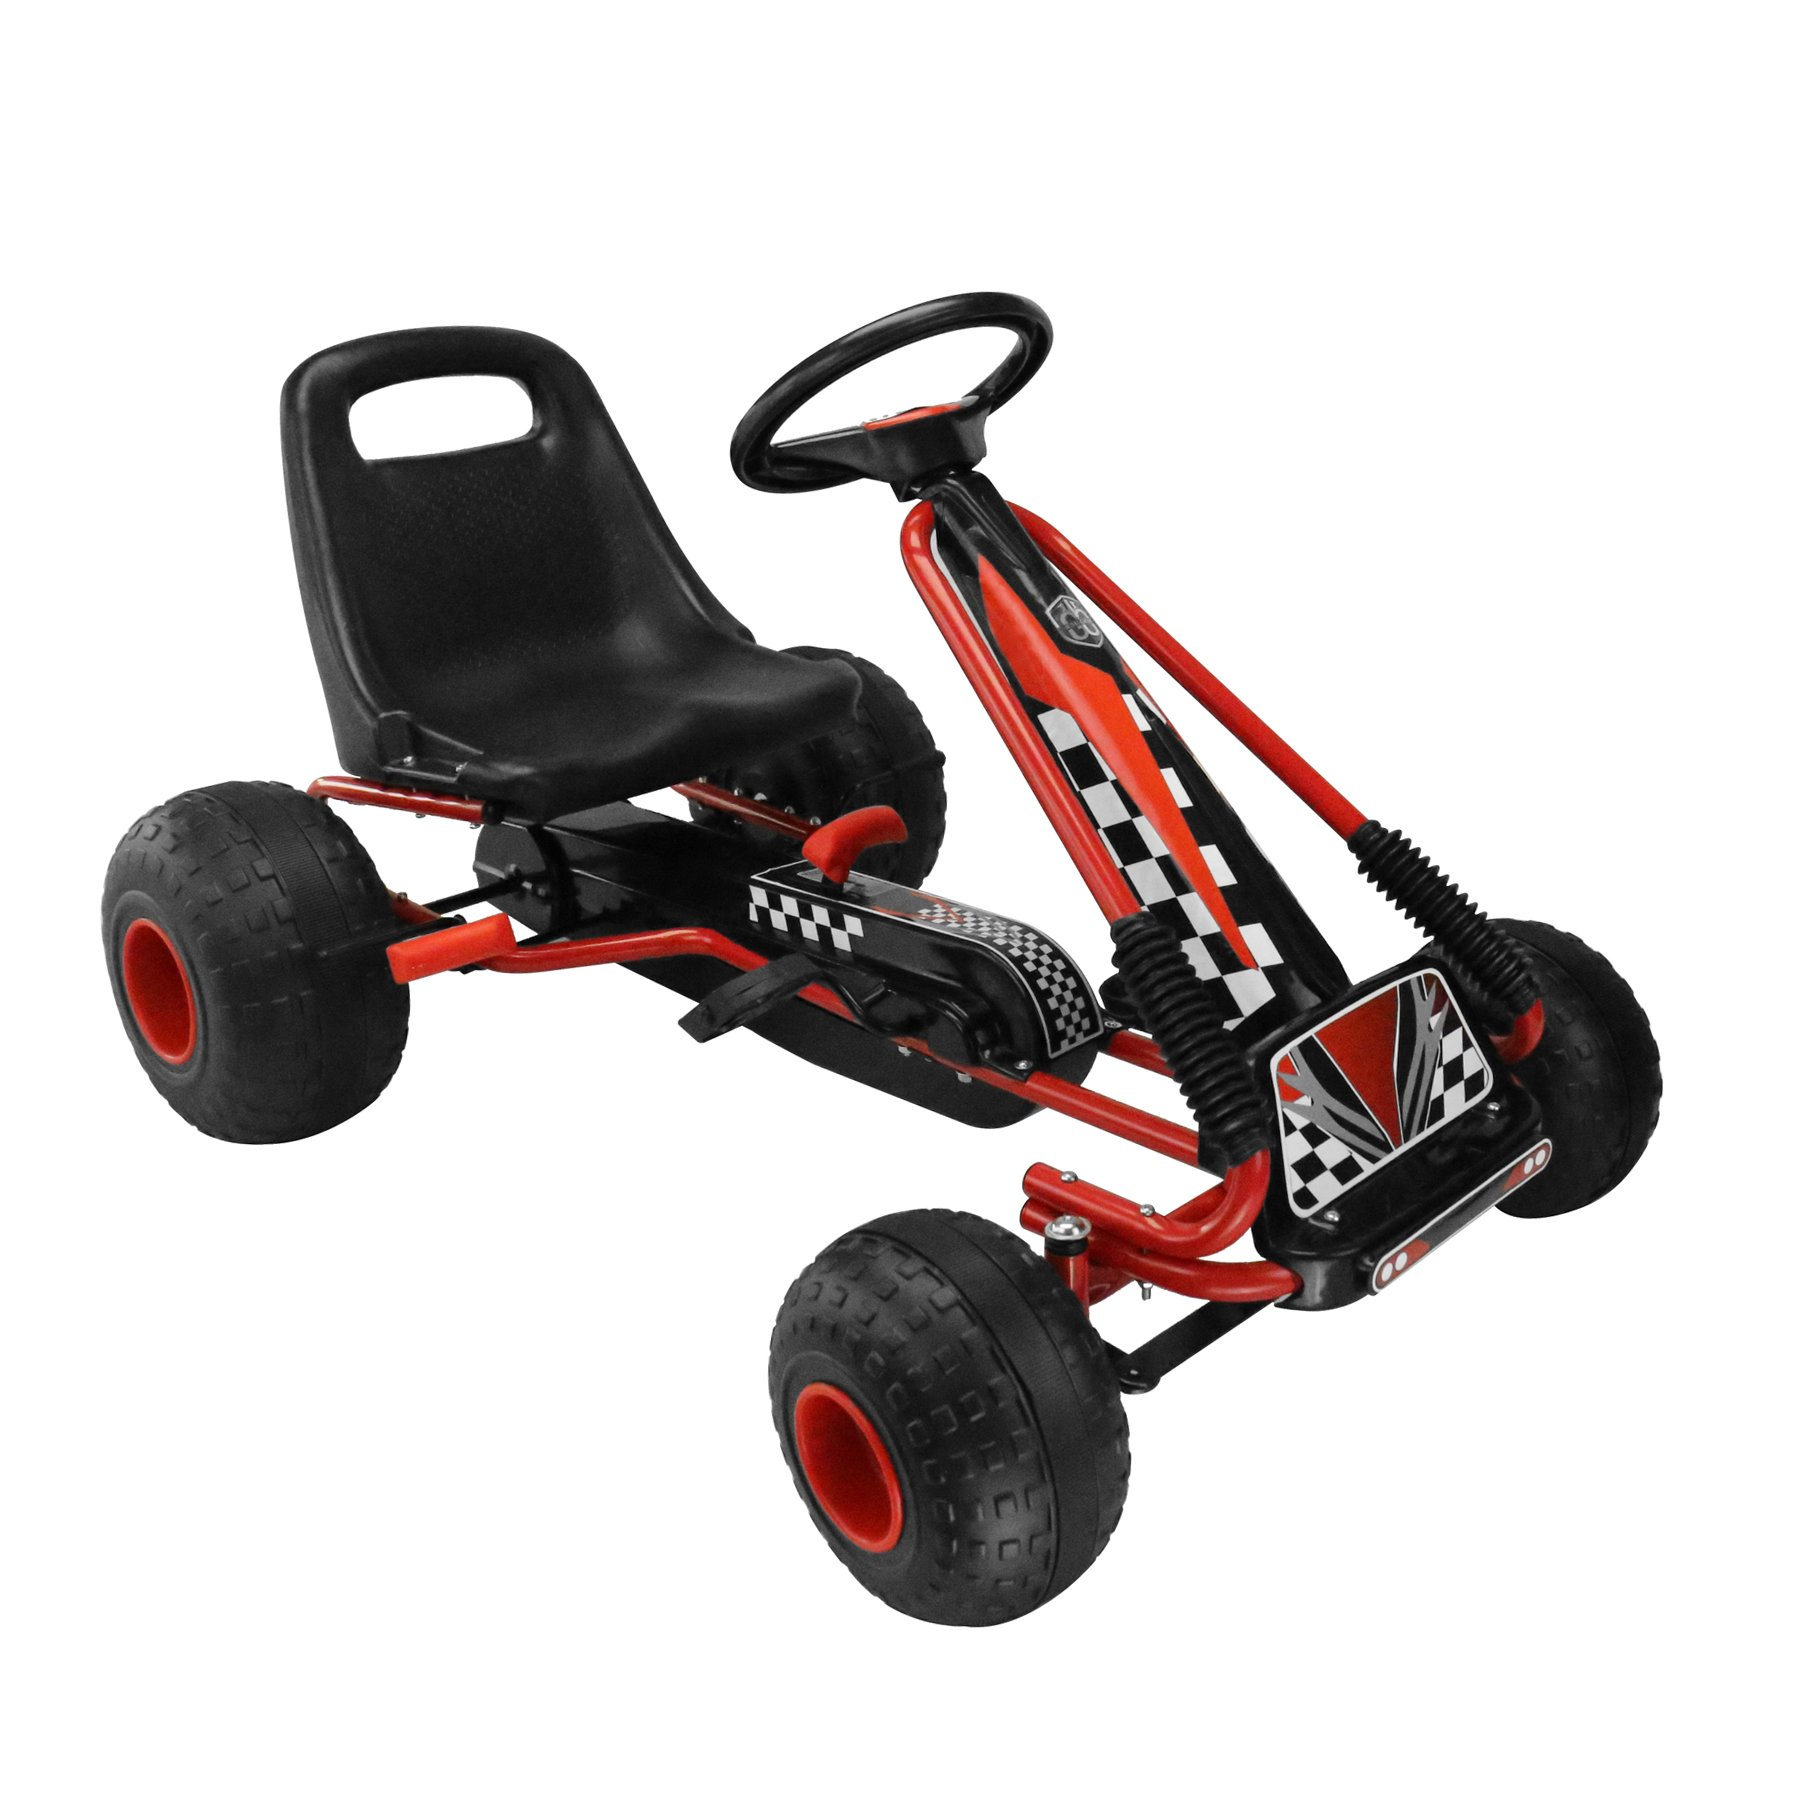 Kids Ride on Pedal Go-Kart-Race Red